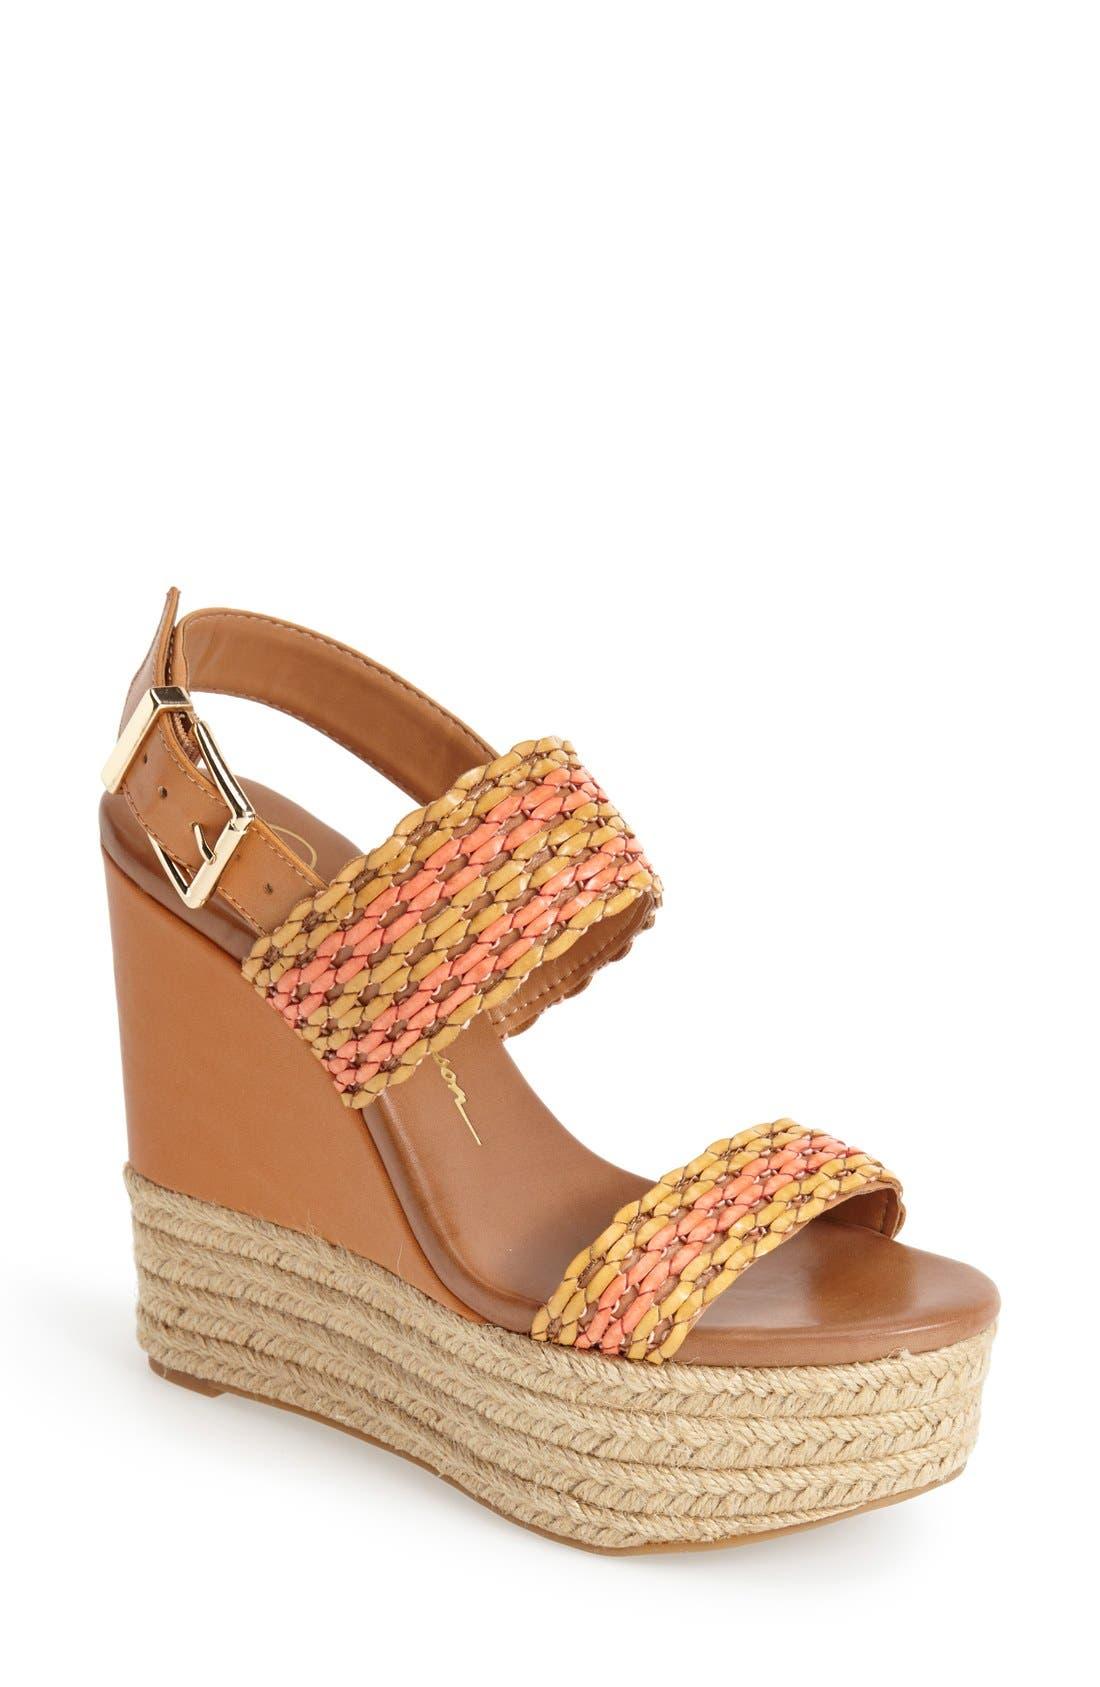 'Allyn' Wedge Platform Leather Sandal,                         Main,                         color, Beachwood